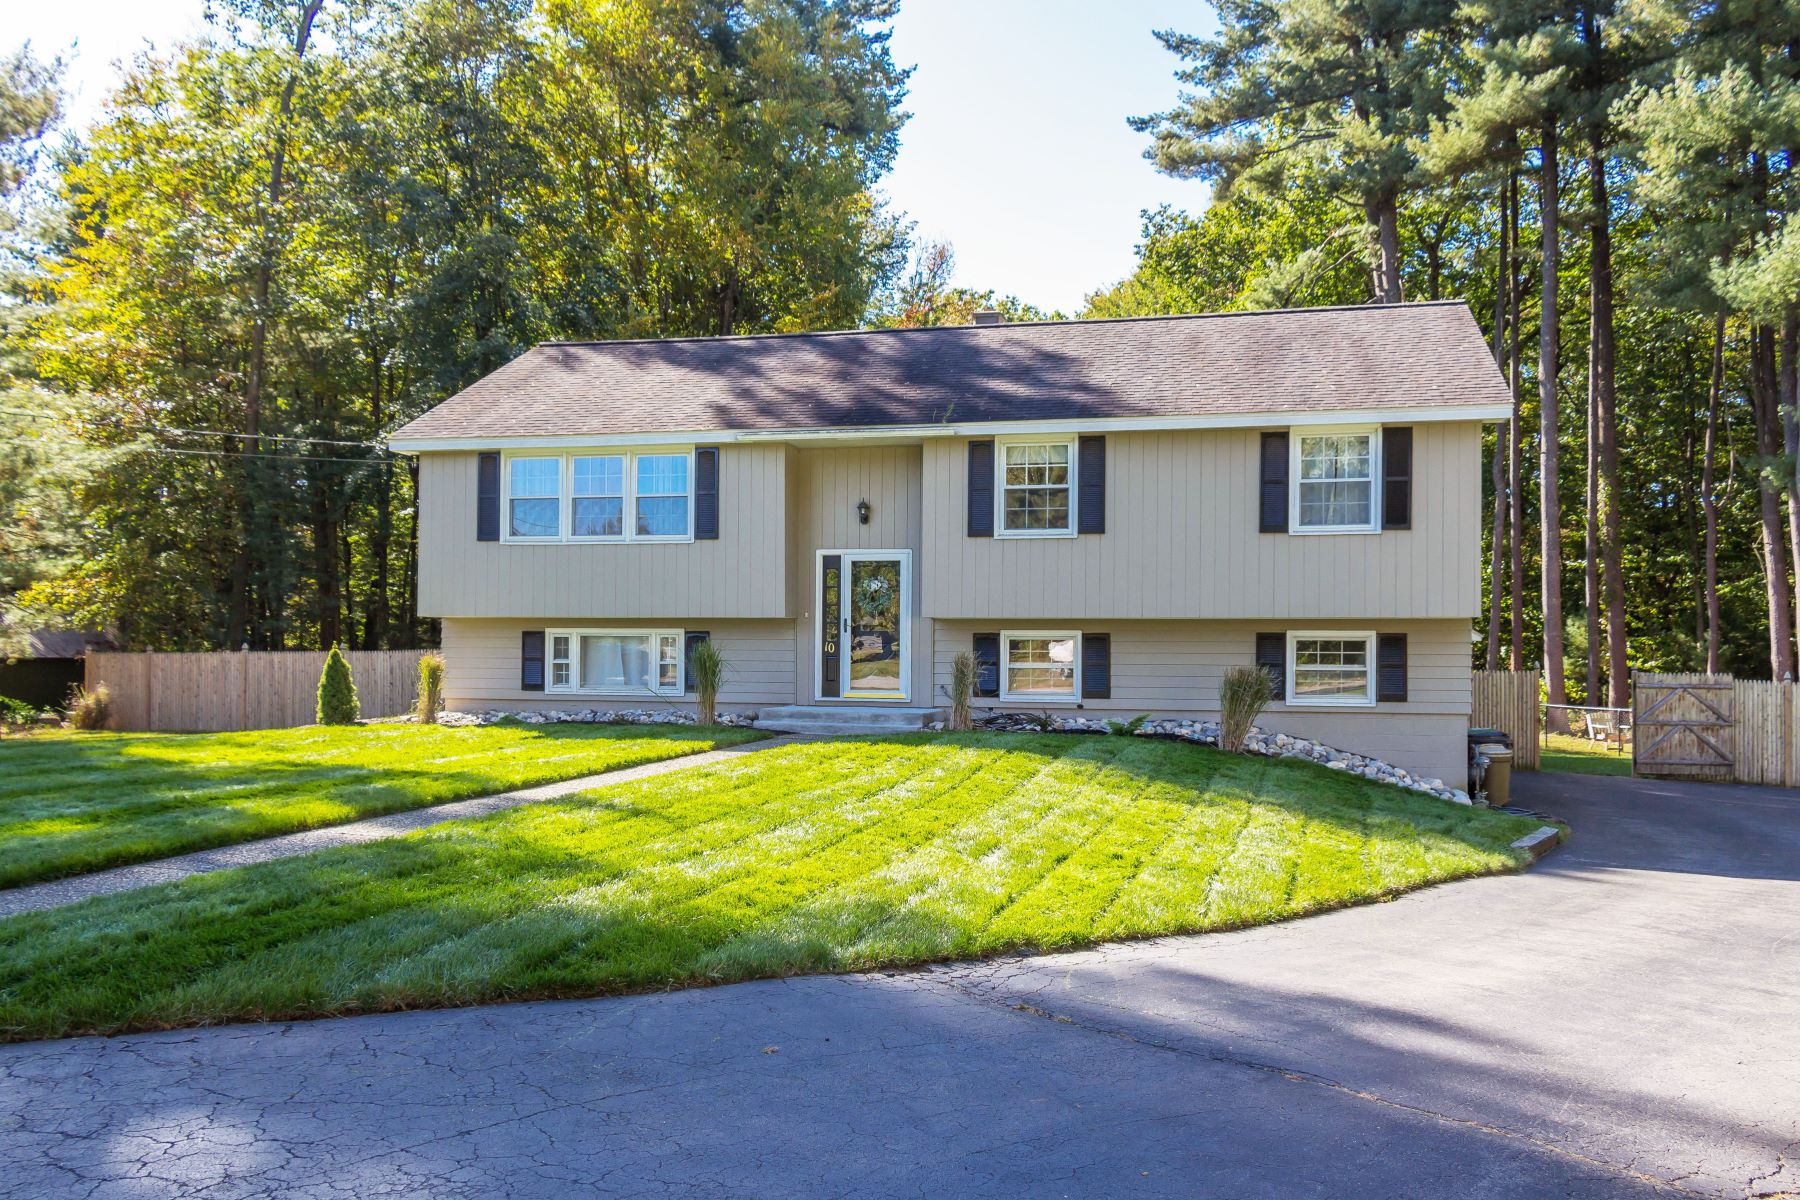 Single Family Homes for Sale at Beautiful Clifton Park Home 10 Pineview La Clifton Park, New York 12065 United States